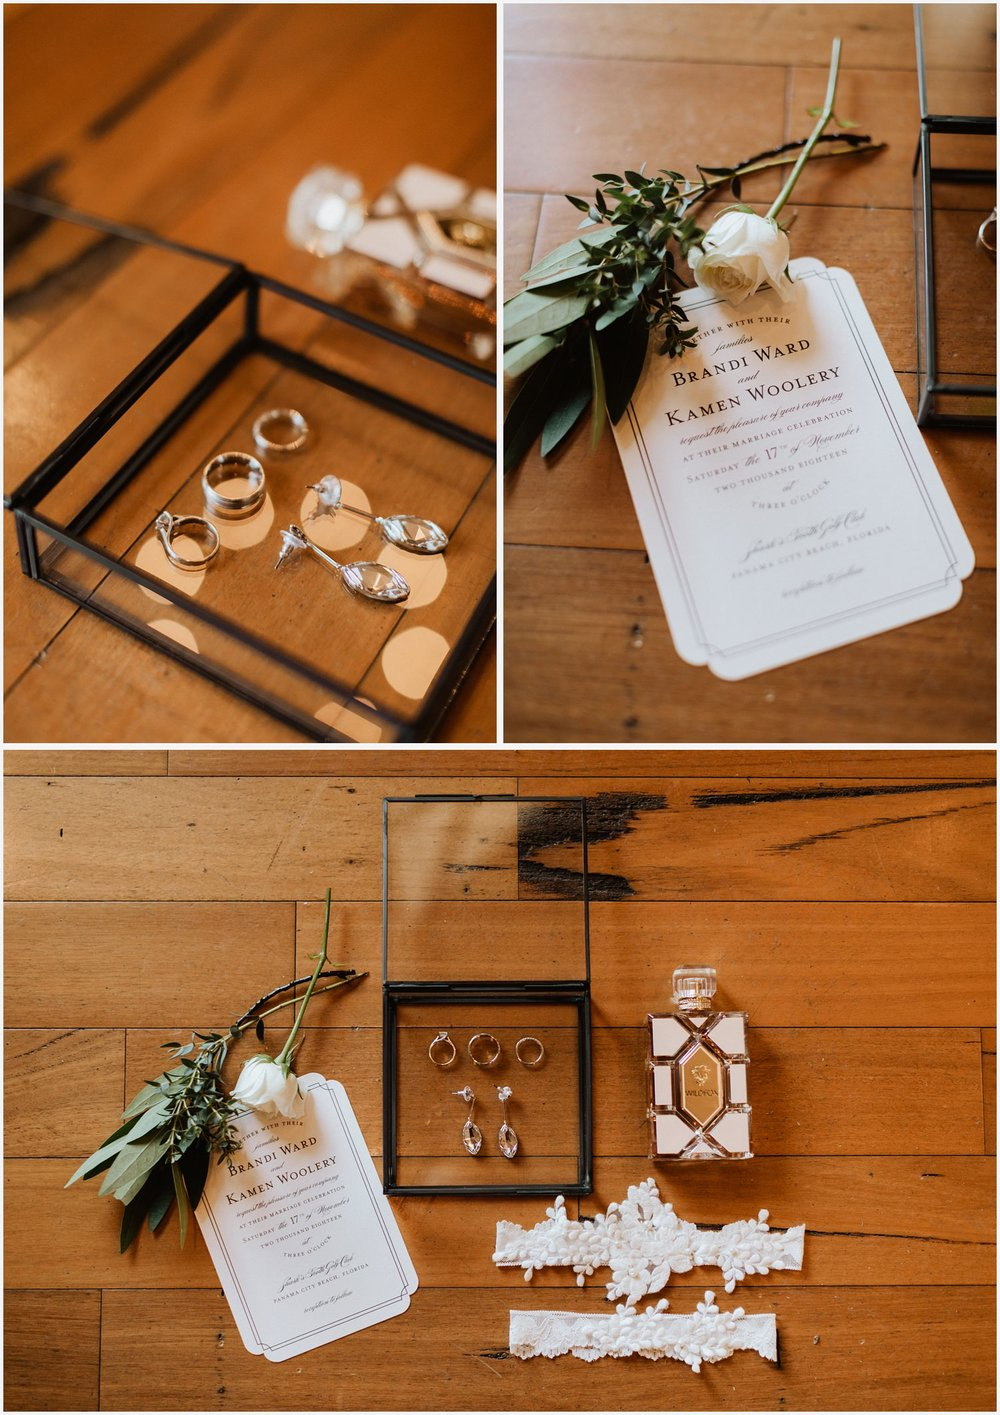 Wedding details at the Shark's Tooth Golf Club